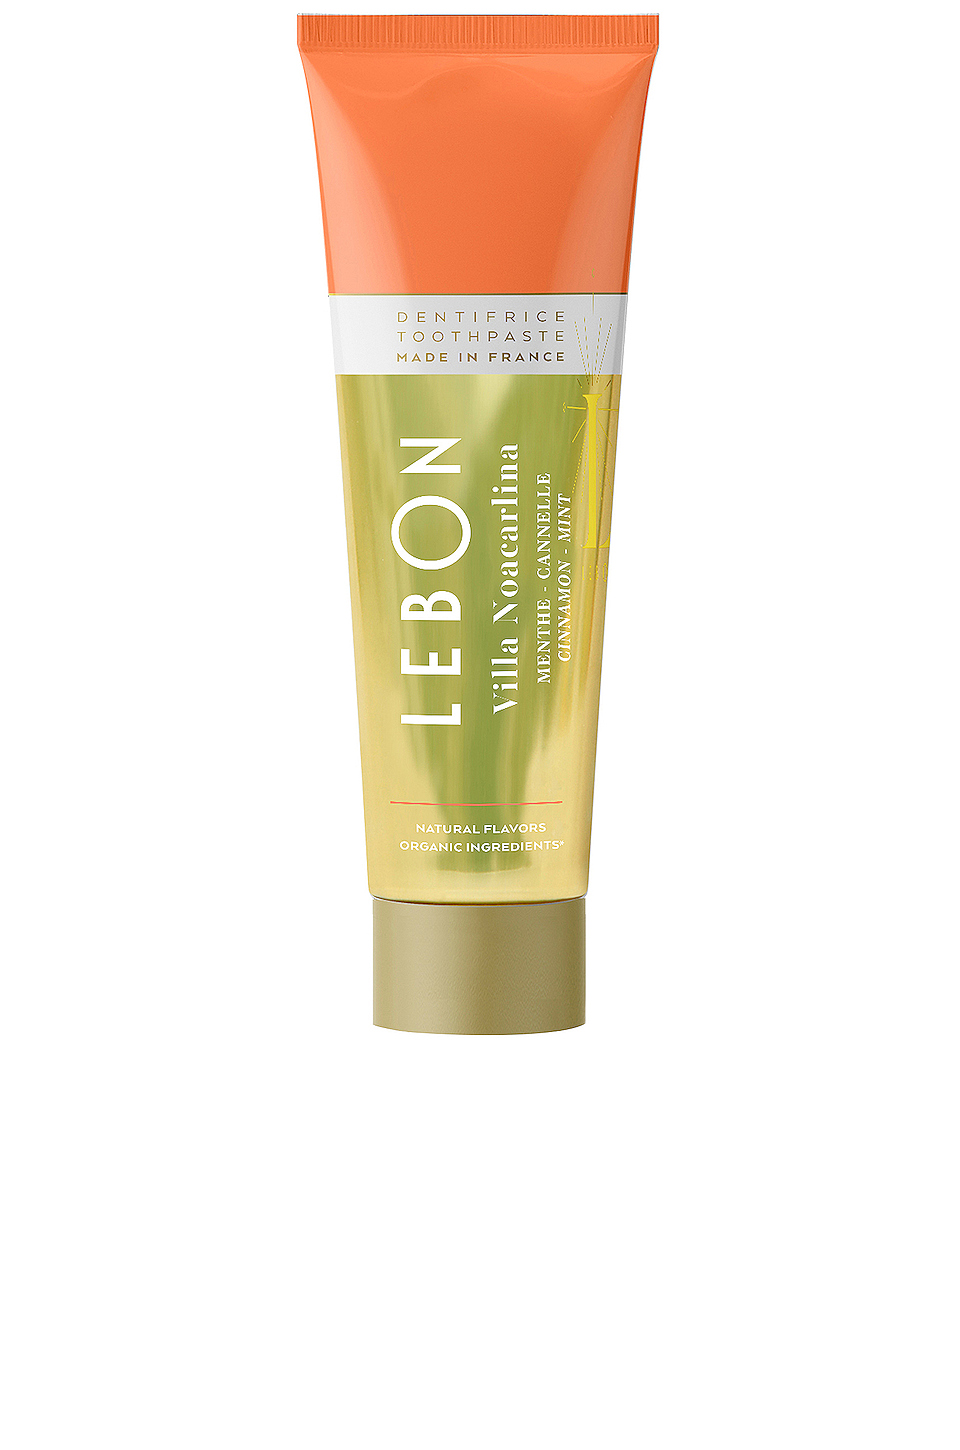 LEBON Travel Villa Noacarlina Toothpaste in Cinnamon & Mint